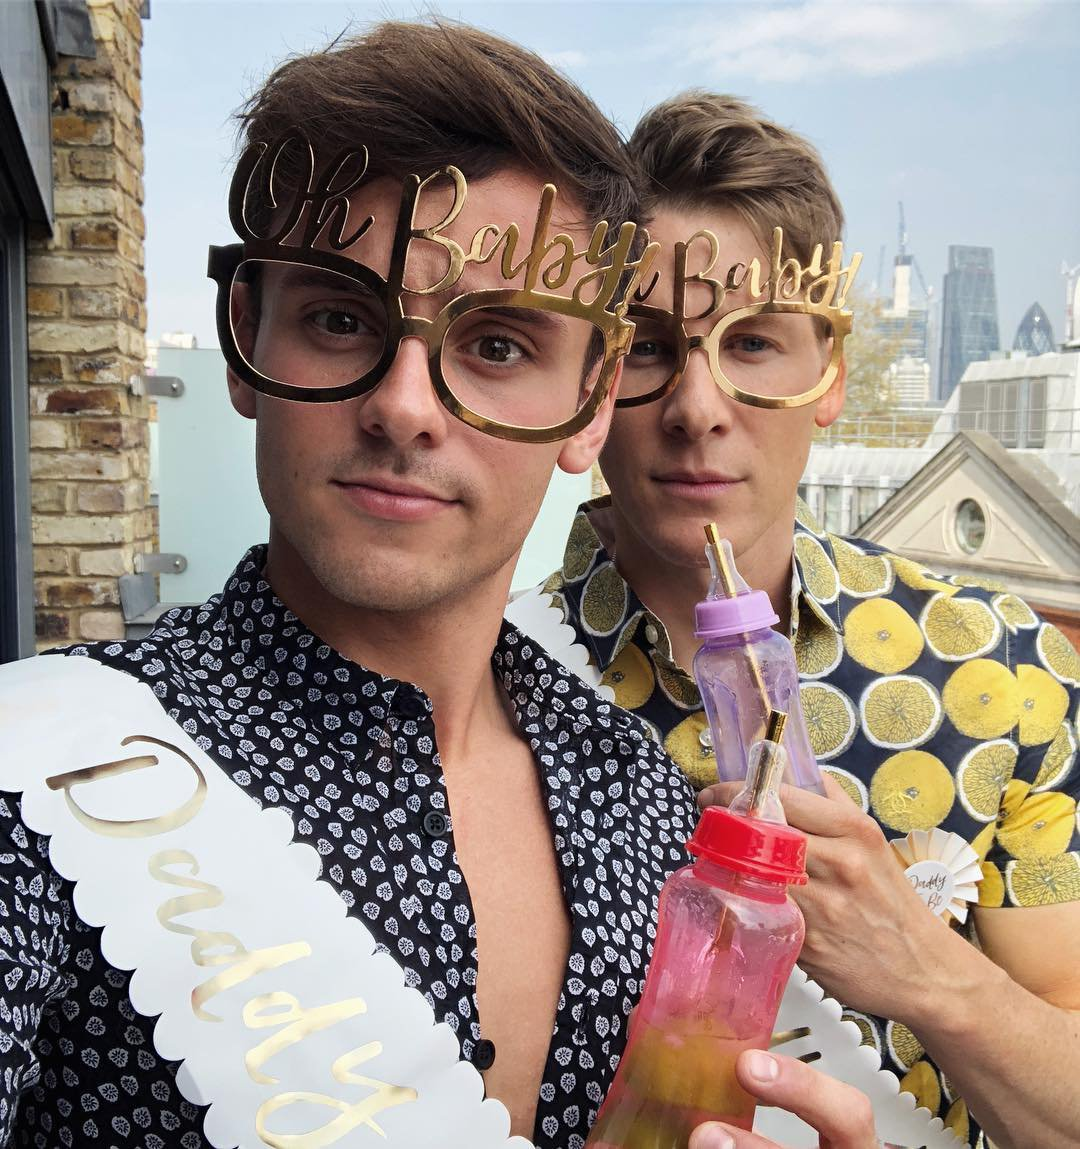 How old is Tom Daley, when did he marry Dustin Lance Black, and what is his son's name?